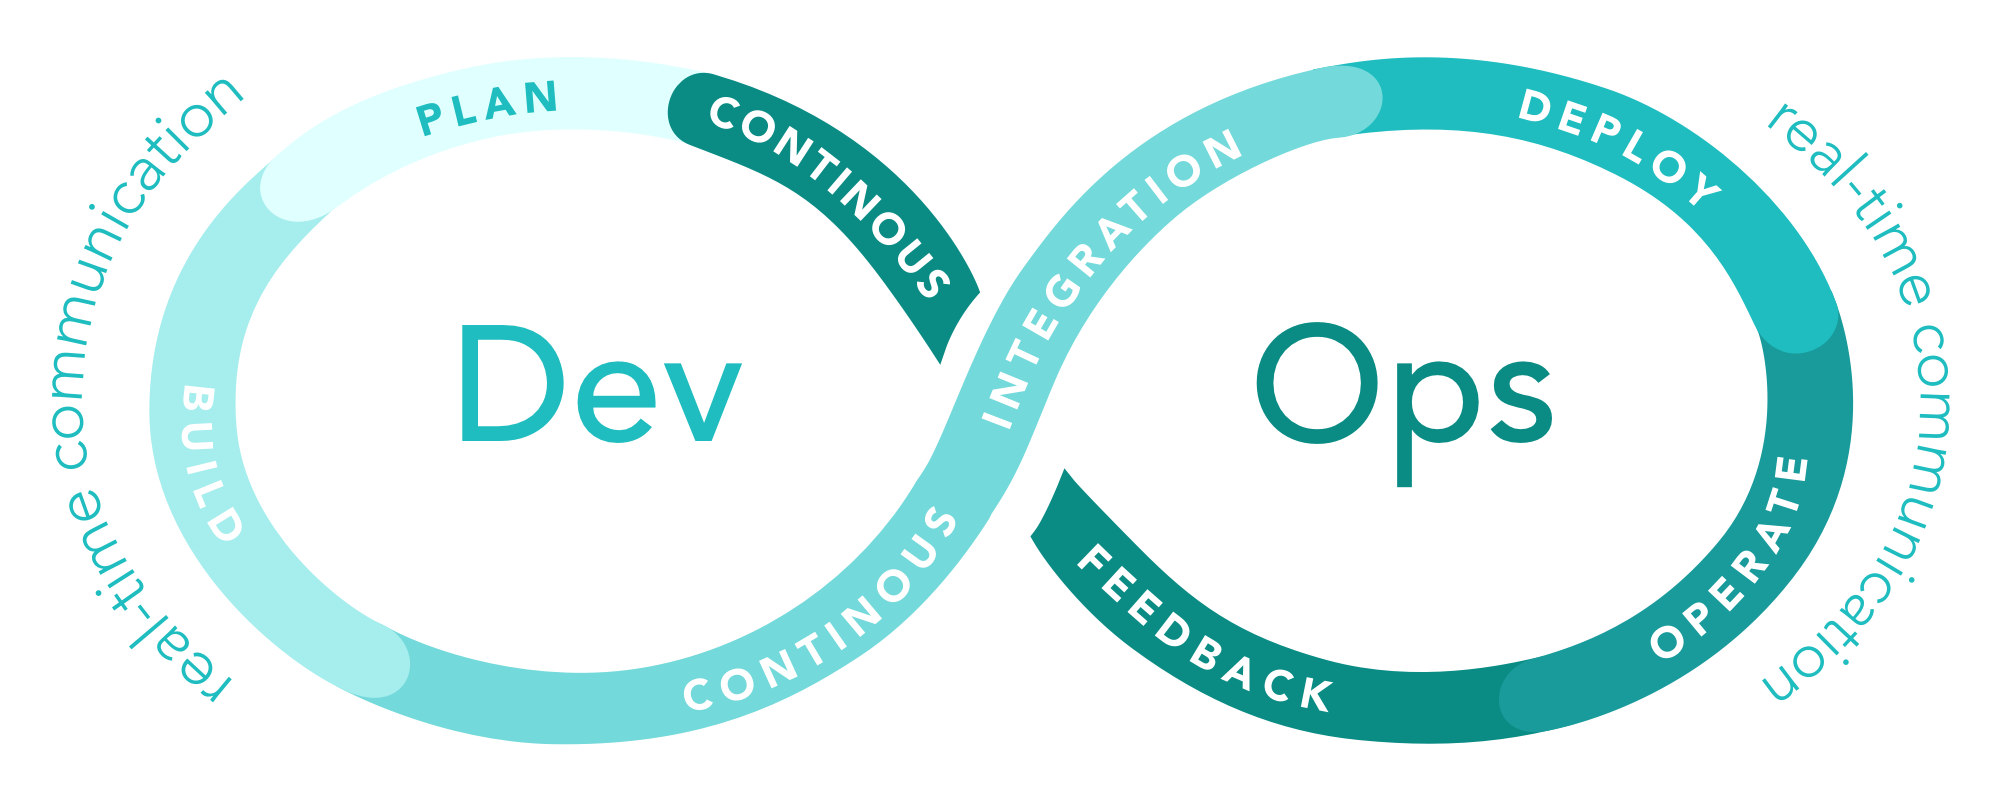 DevOps continuous work cycle